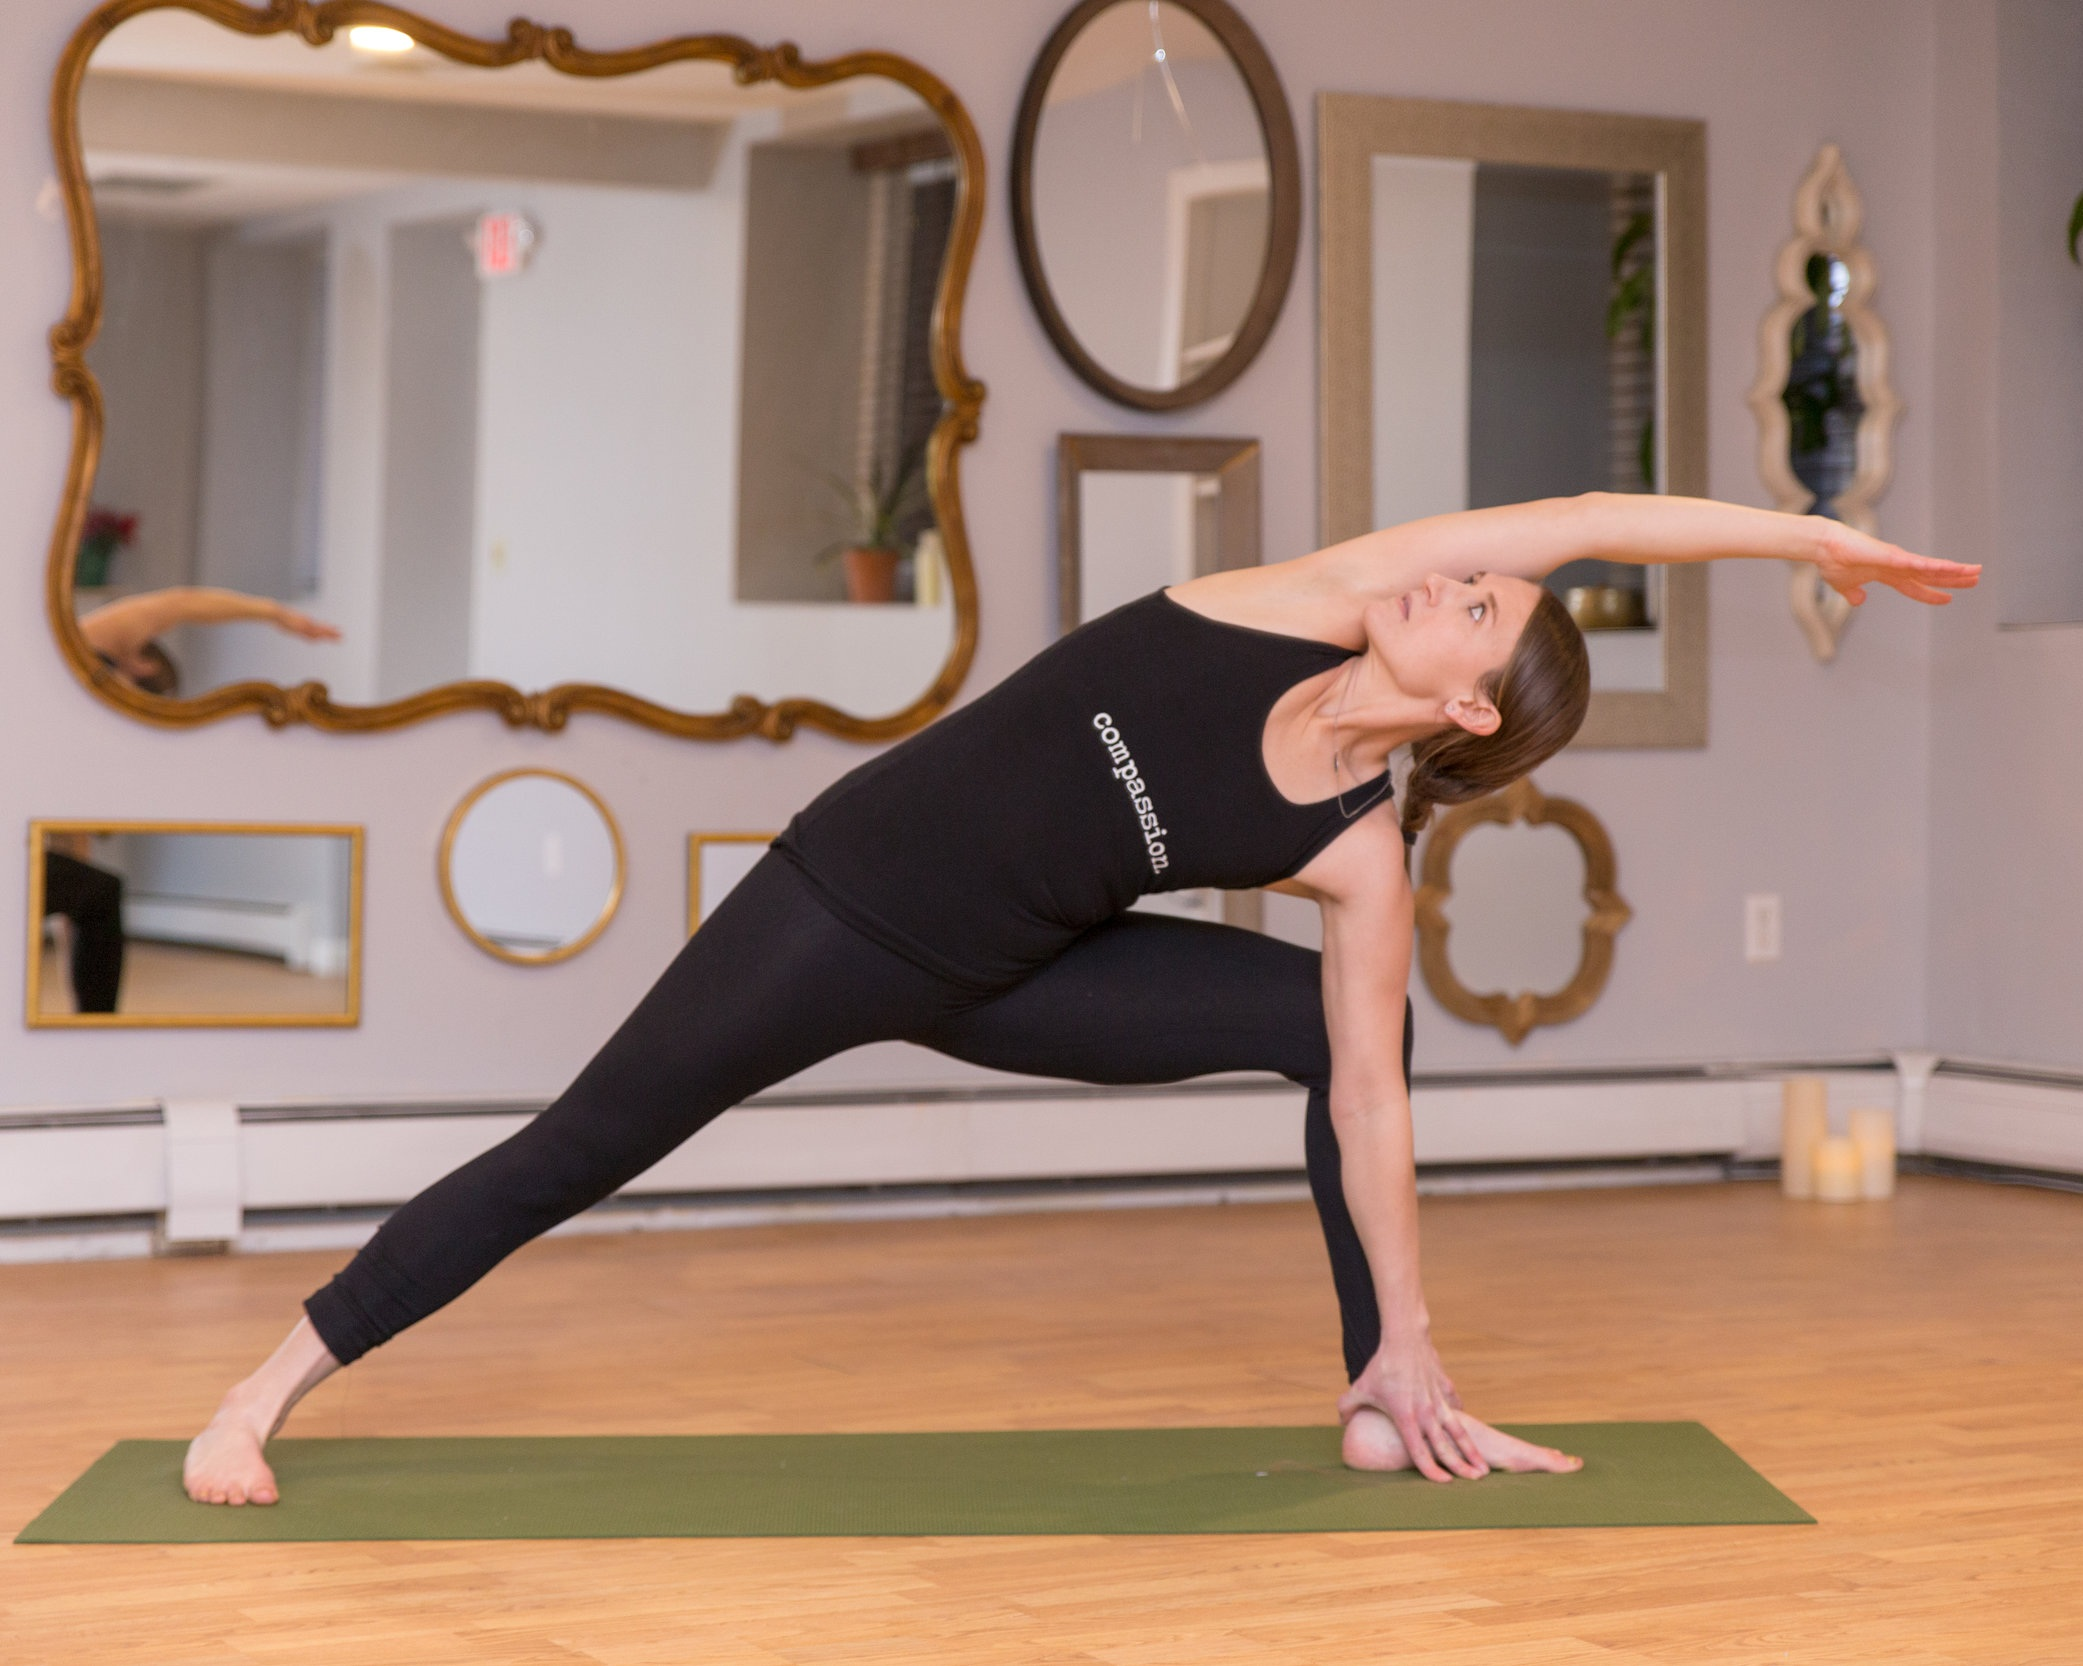 Rose Schieck  Rose's interest in yoga began as an exploration in another modality of exercise but has since transformed into a sacred practice for connecting deeper with herself and others. Rose has explored many styles of yoga over the years and believes that yoga benefits anyone and everyone. She completed her RYT 200 hr at Soulfire Power Yoga in Greenland, NH, and has years of experience as a health and fitness professional. Most recently Rose completed training for Restorative and Yin Yoga through the Muse School of Yoga in Portland, ME. She earned her B.S. in Physical Education from Plymouth State University and additionally holds certification as a Wellcoaches Health and Wellness Coach. Rose has also completed the Yoga for 12 step Recovery training and currently teaches Yoga for Addiction and Recovery for the Seacoast Area Teachers of Yoga in Action a non-profit providing access to yoga for at-risk and underserved populations.  Rose brings playfulness, empathy, and compassion to her teaching and a passion for guiding people to their ultimate state of well-being. Rose believes that yoga is a way of being, a lifestyle, a practice of discovering and accepting yourself and healing traumas and self-limiting beliefs. She speaks to the spirit in her teaching and creates a safe space for others to discover insights into their inner workings and renew their innate power.